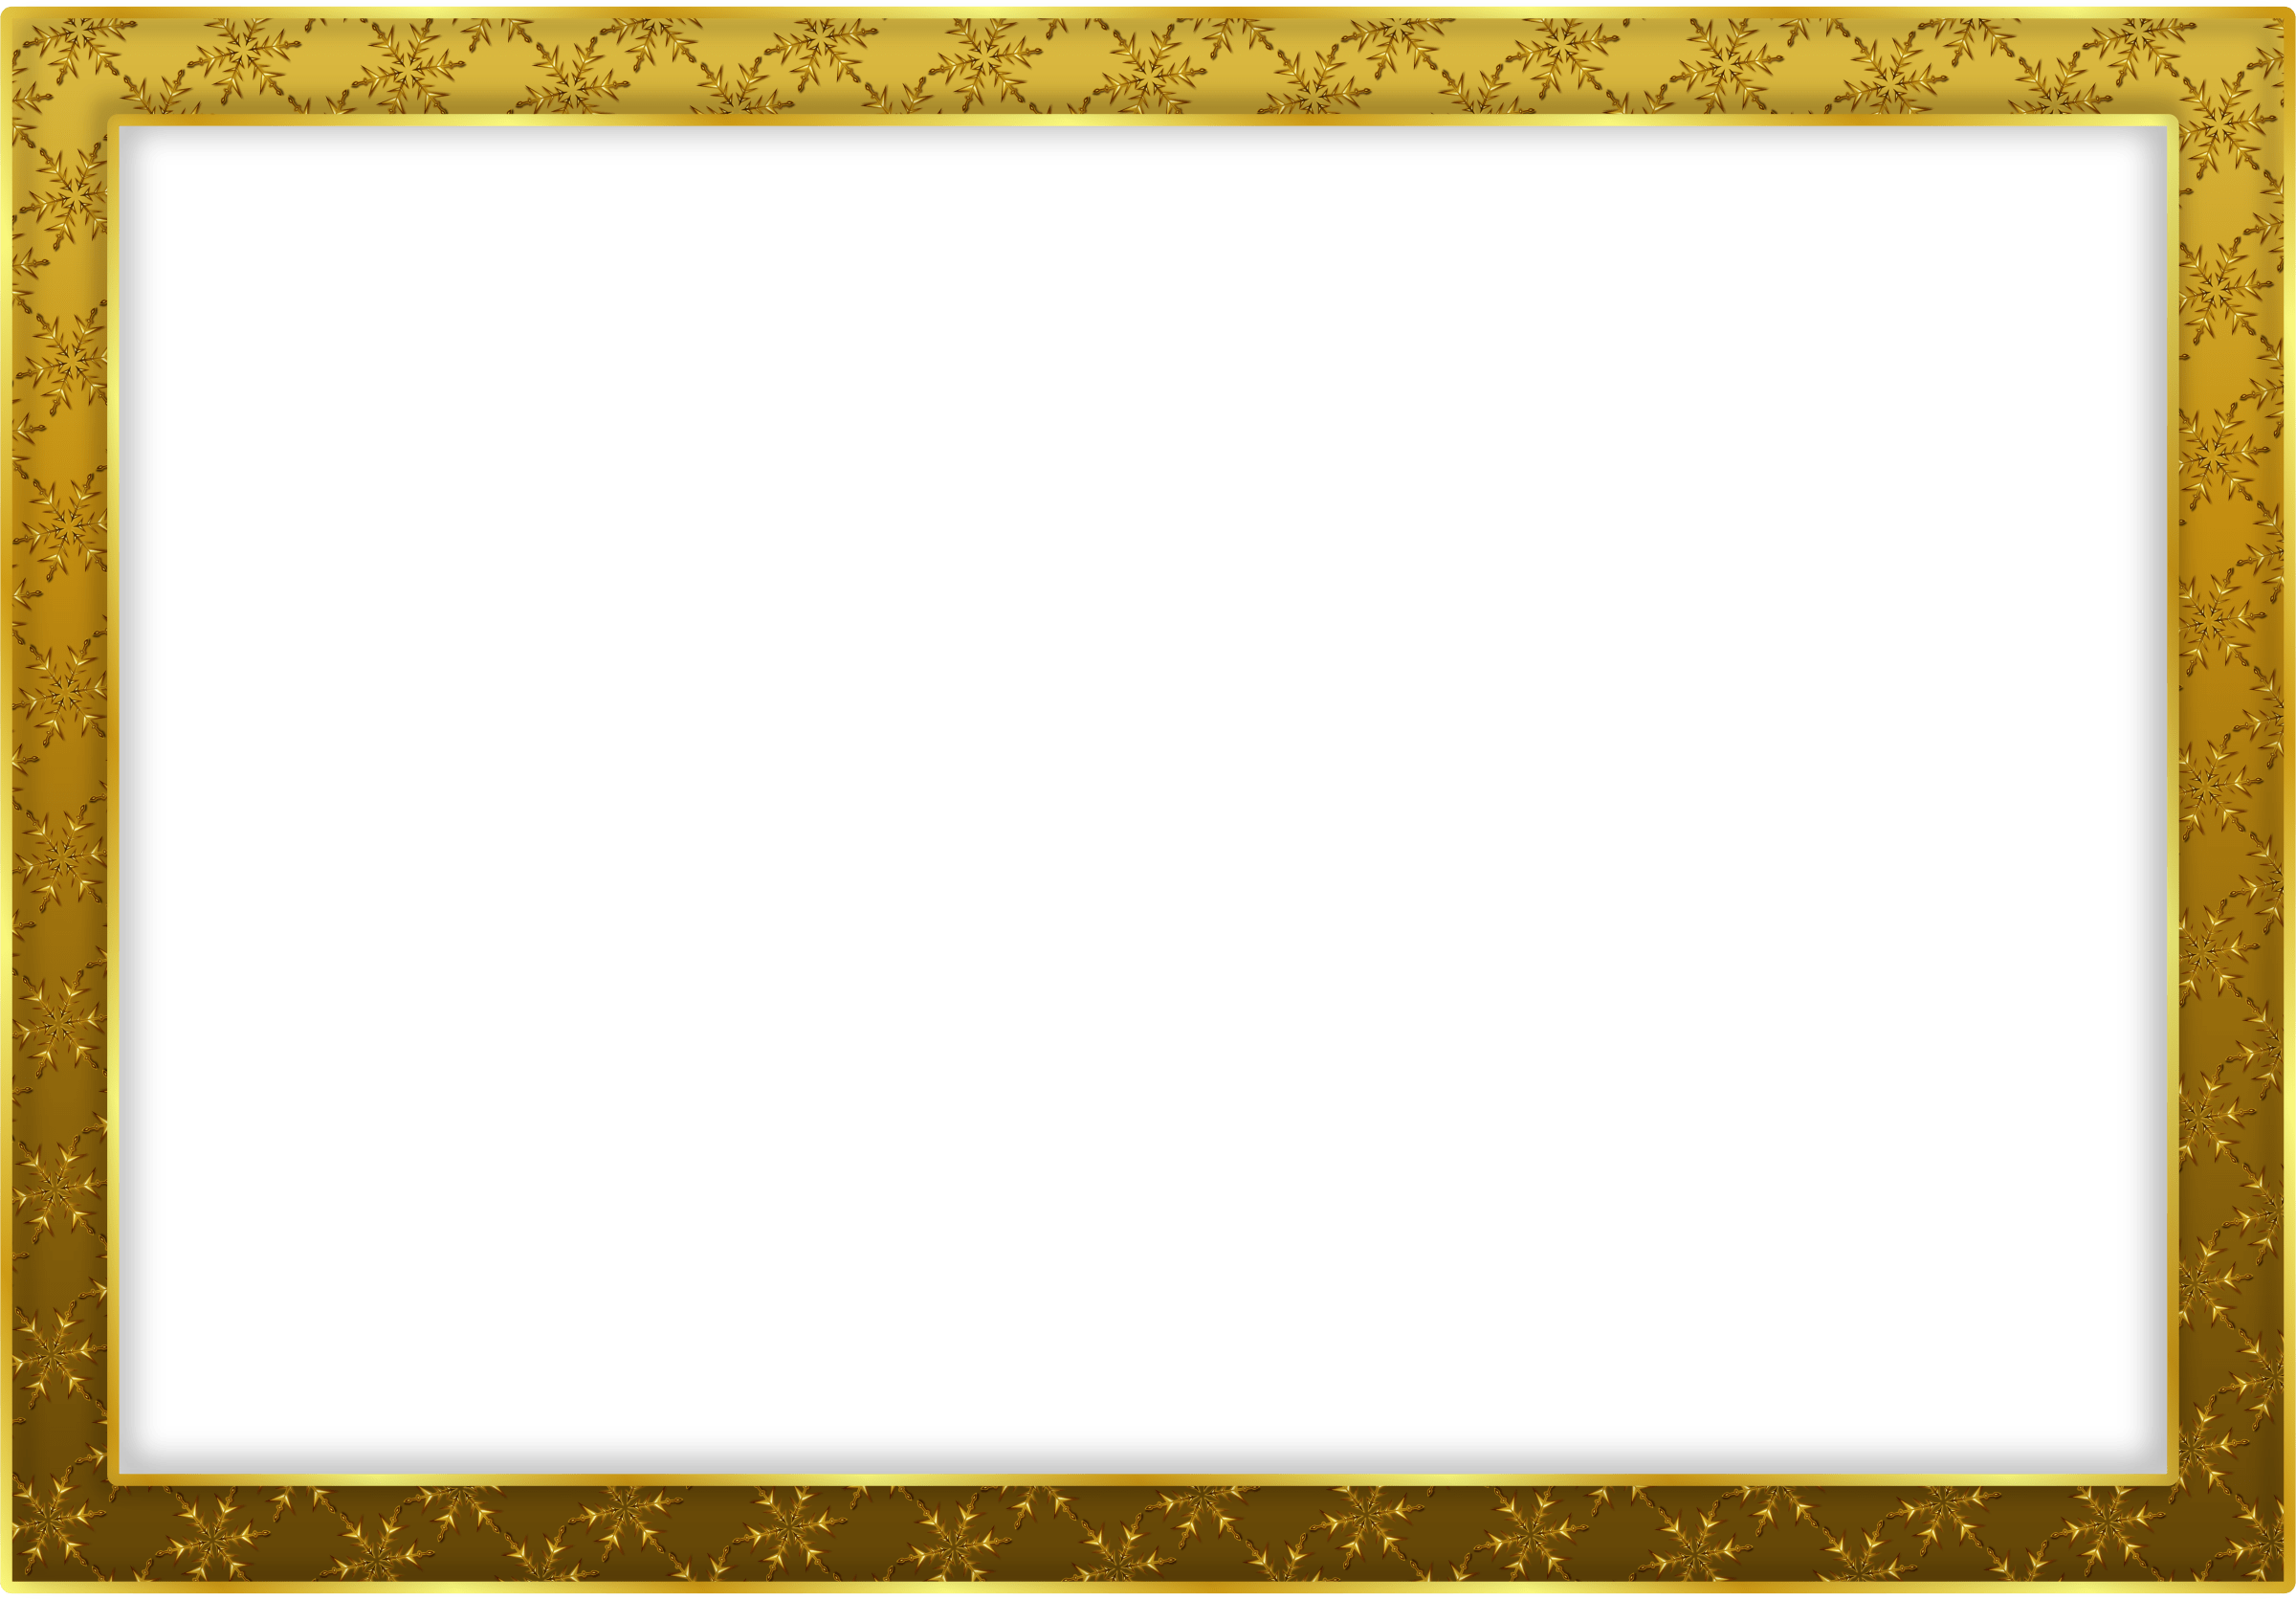 Golden borders png. Simple gold frame landscape